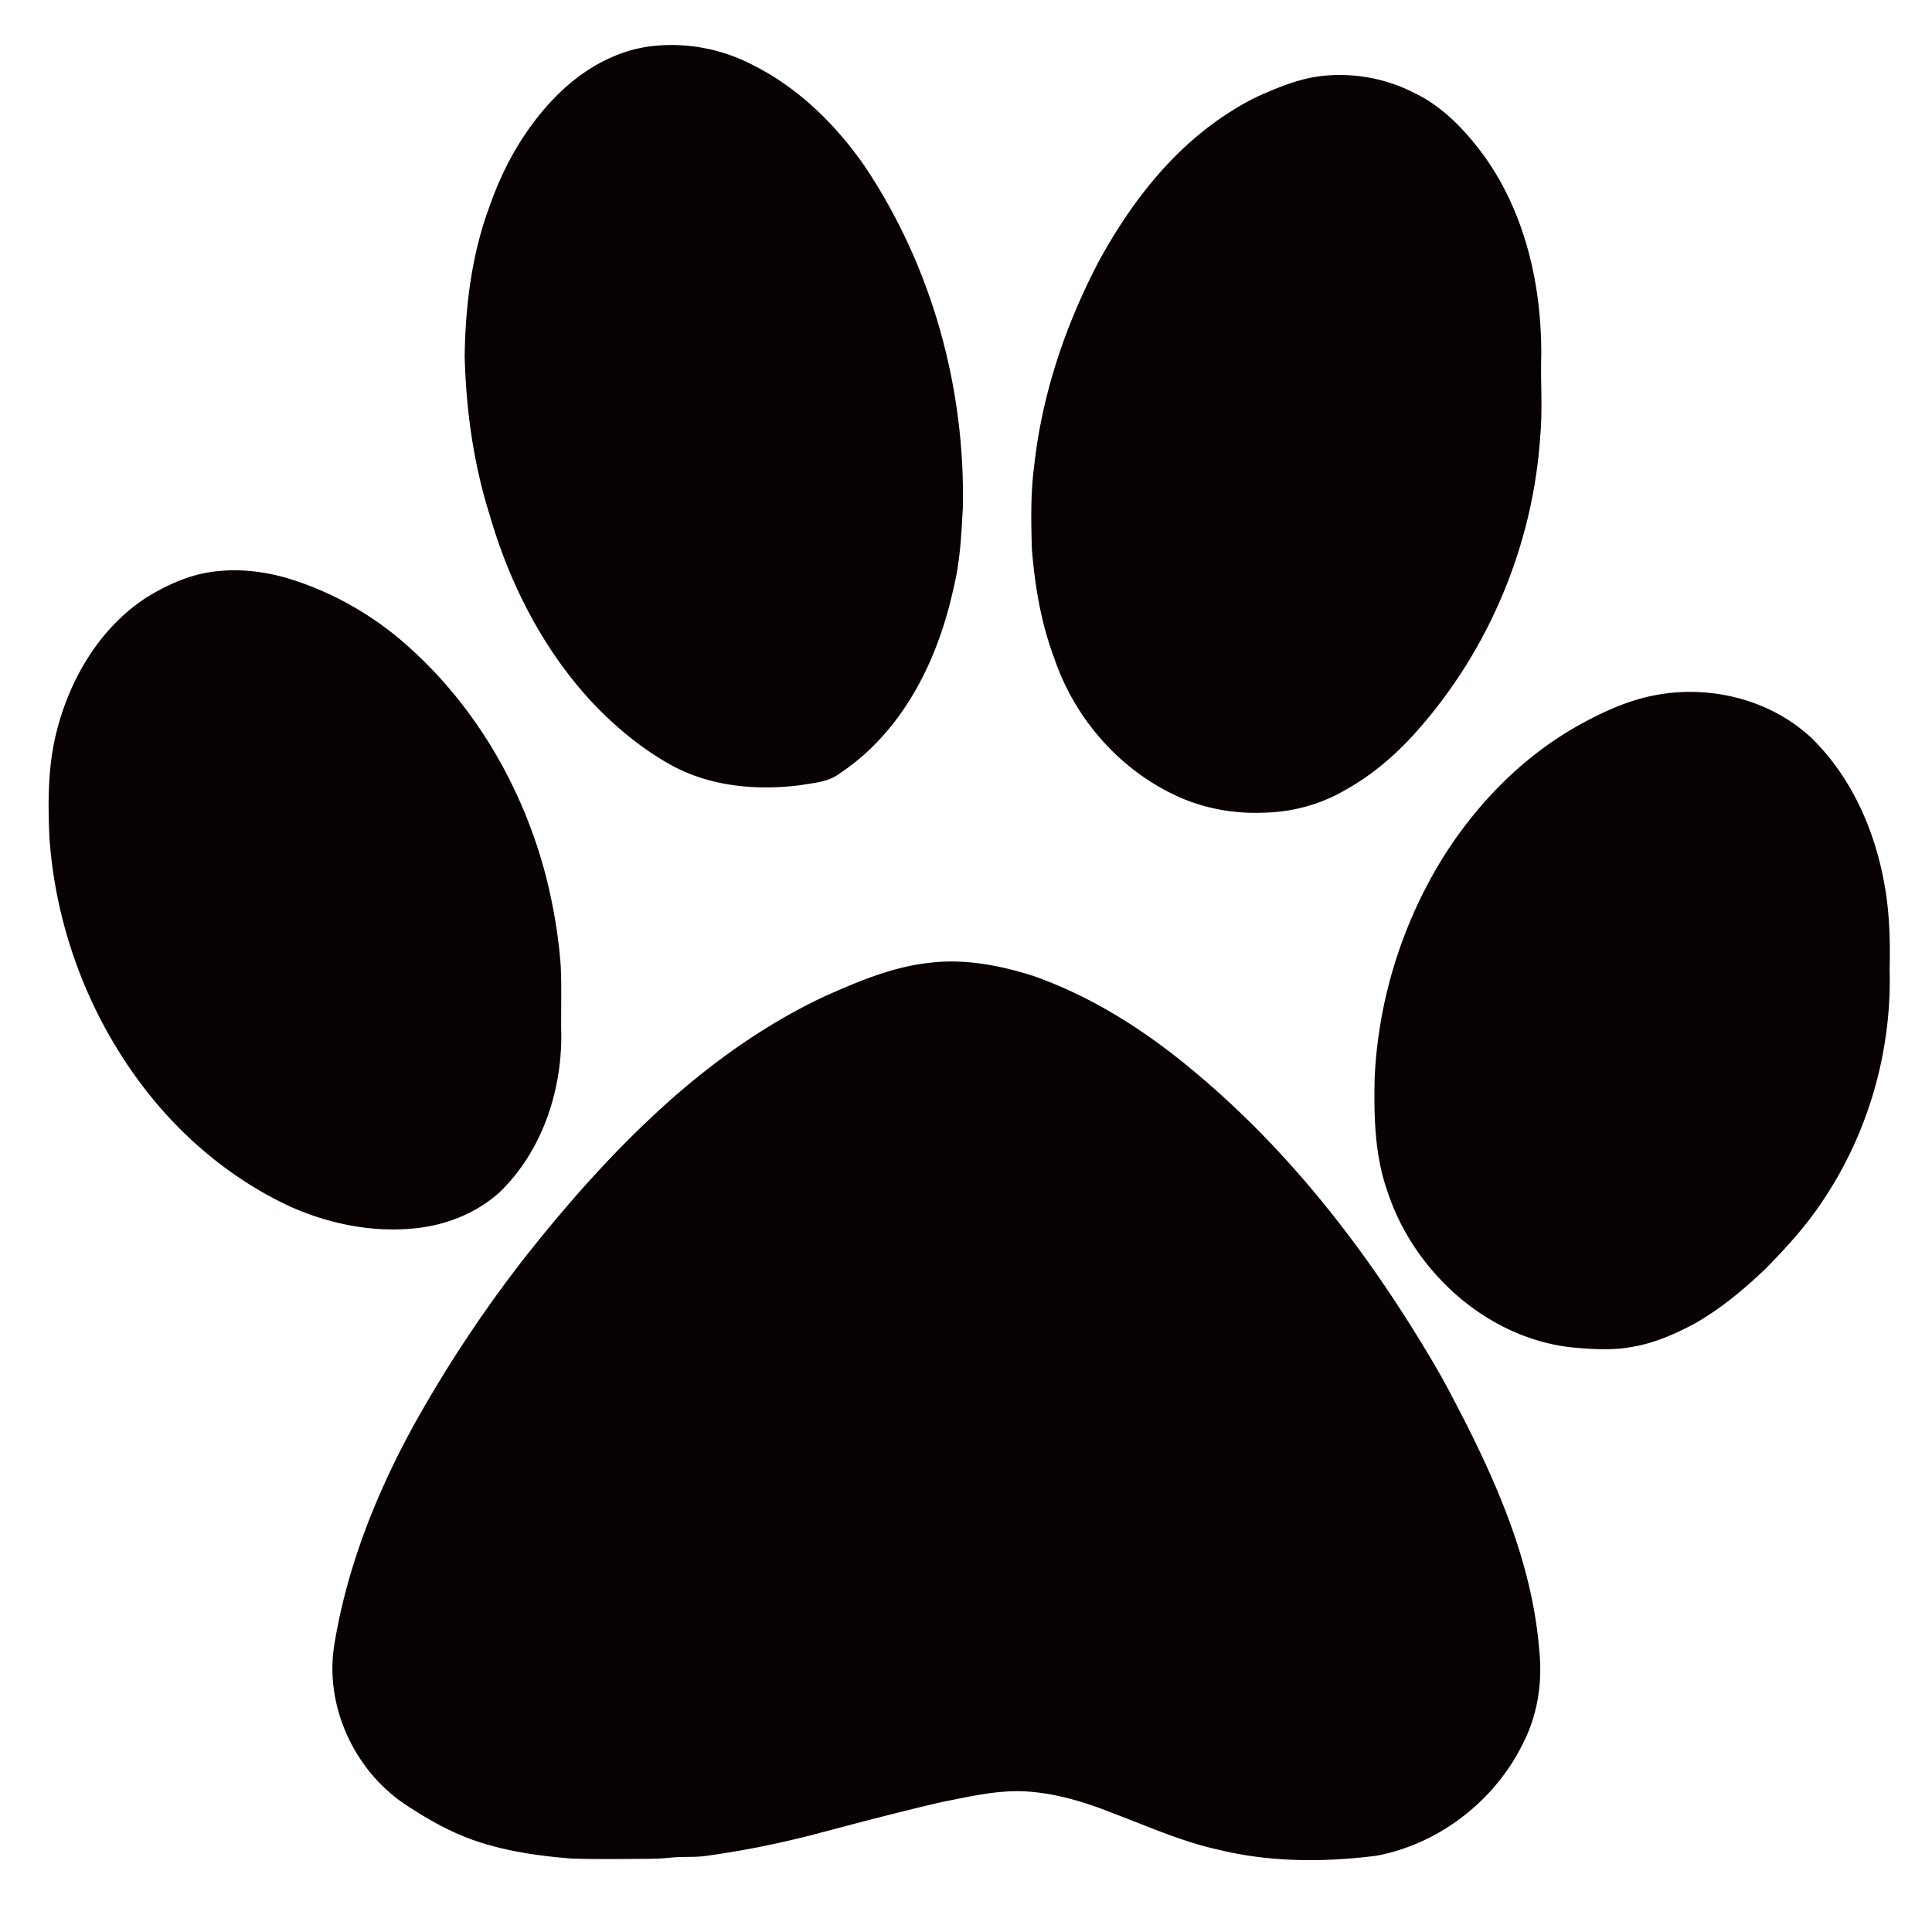 Cat paws clipart. Panther paw print clip